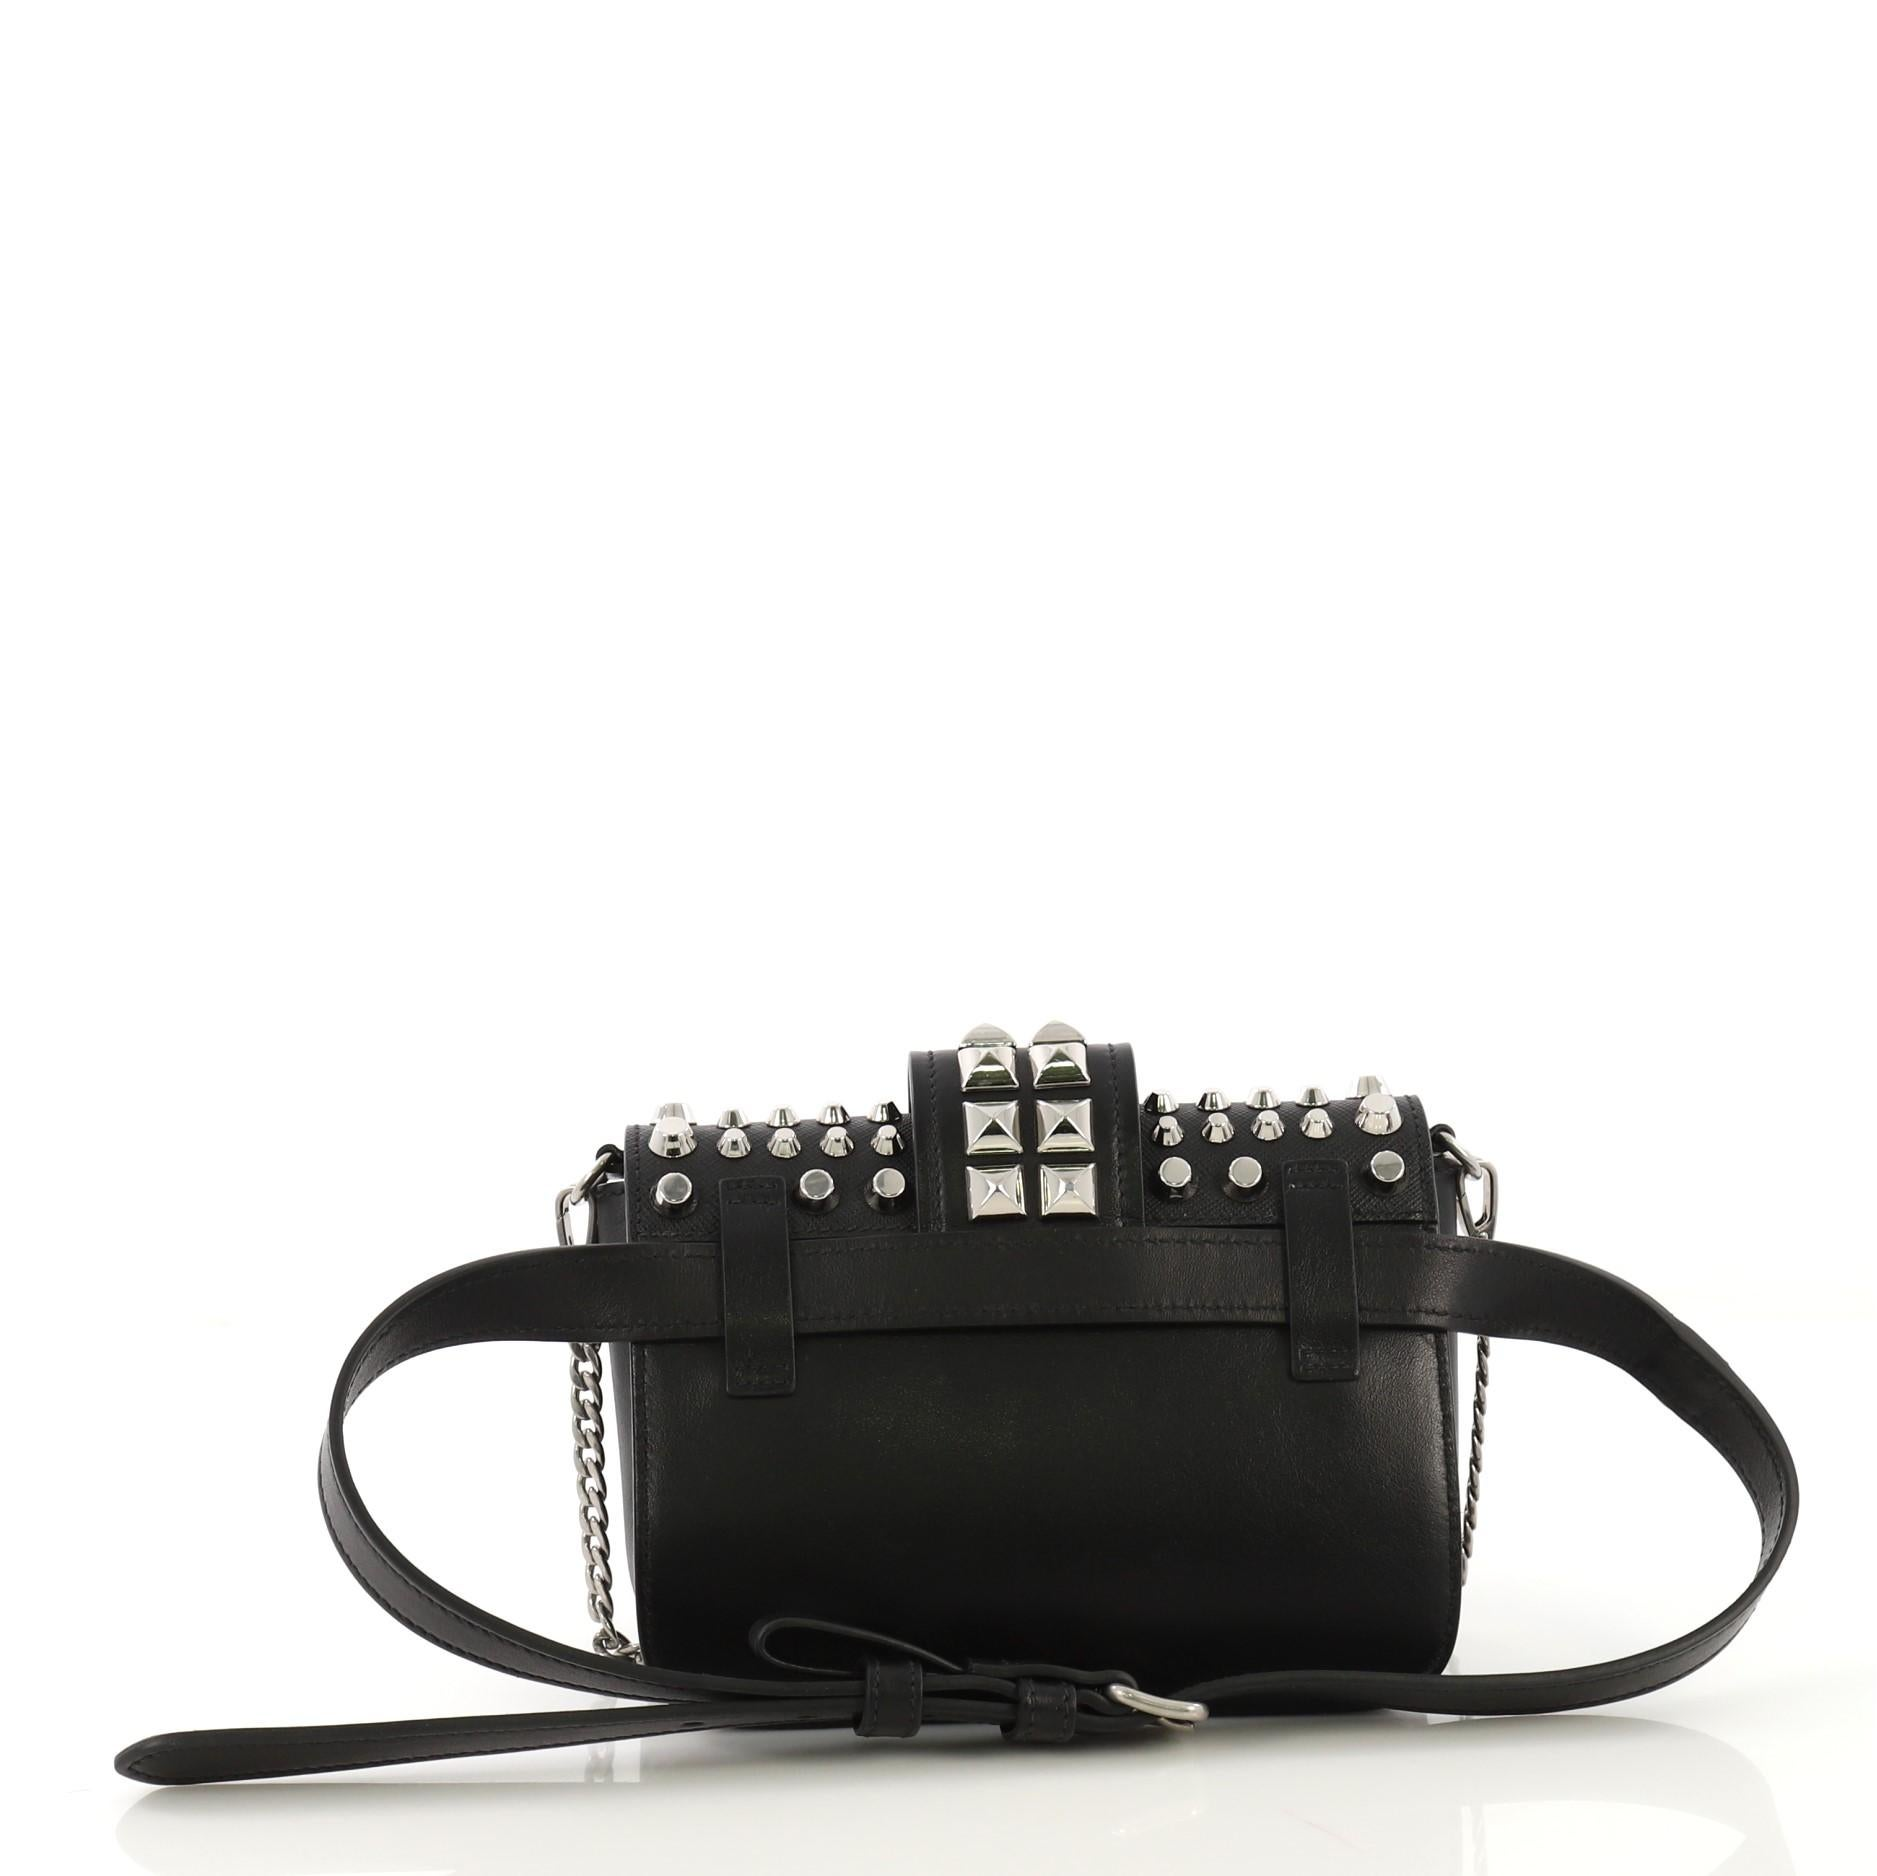 cda2fa92e2d4 Prada Cahier Belt Bag Studded City Calf with Saffiano Leather Small For  Sale at 1stdibs